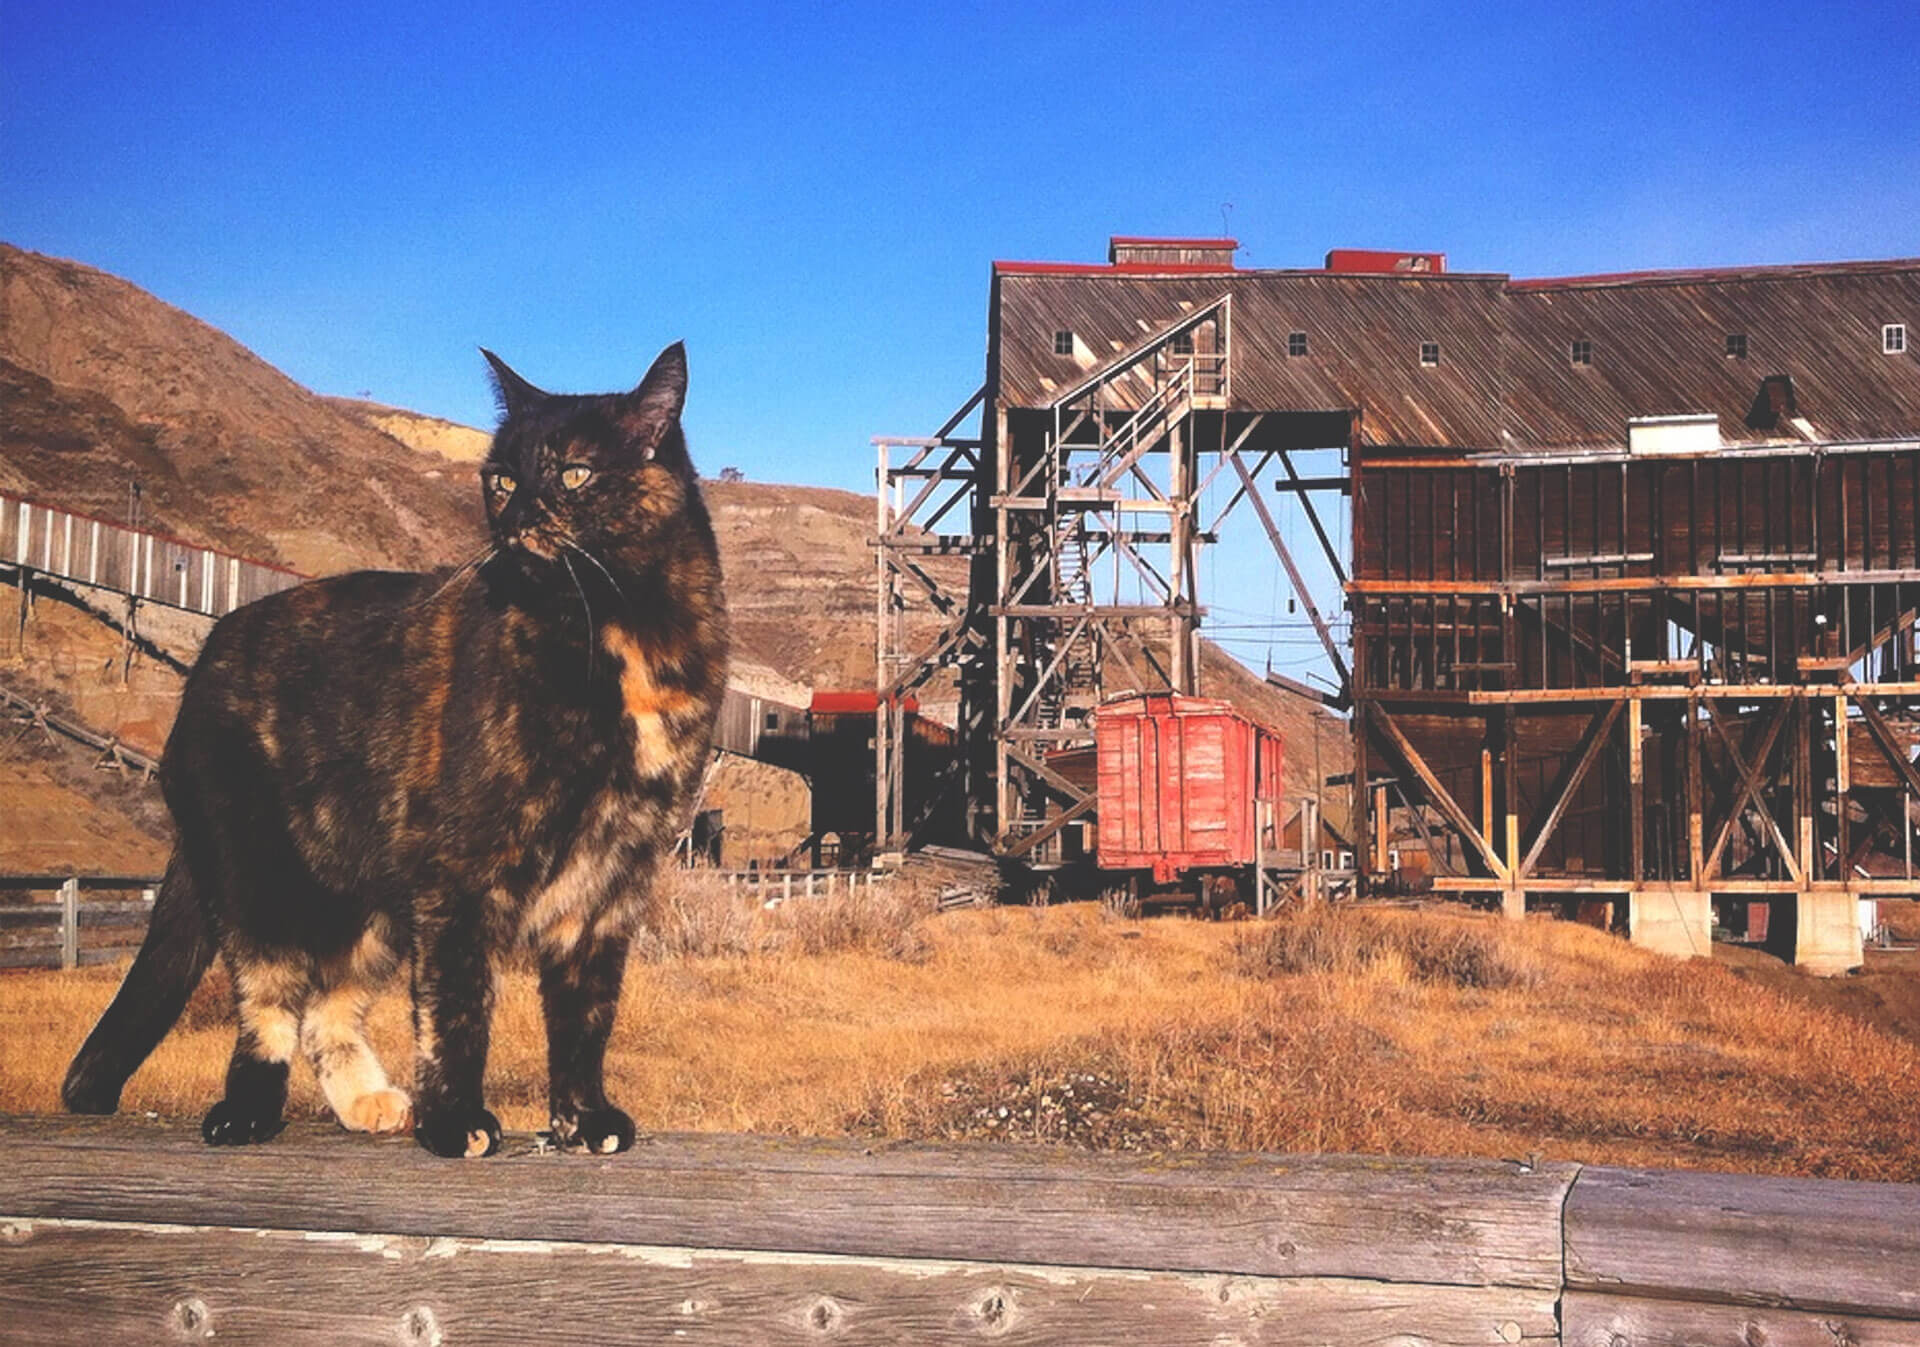 Atlas Coal Mine National Historic Site and a cat